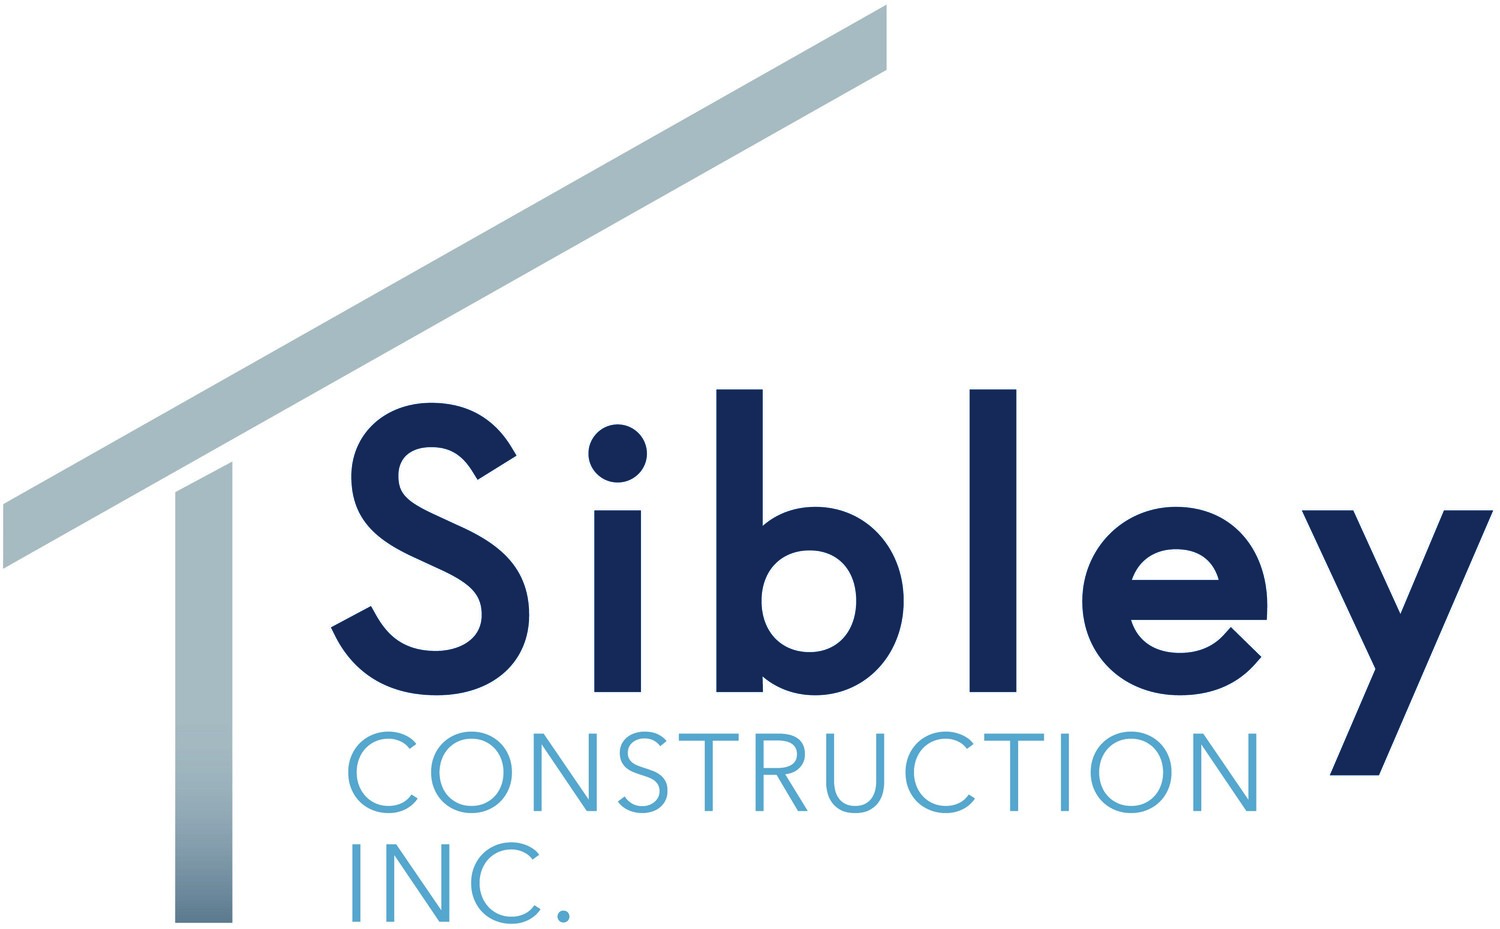 Sibley Construction Inc.